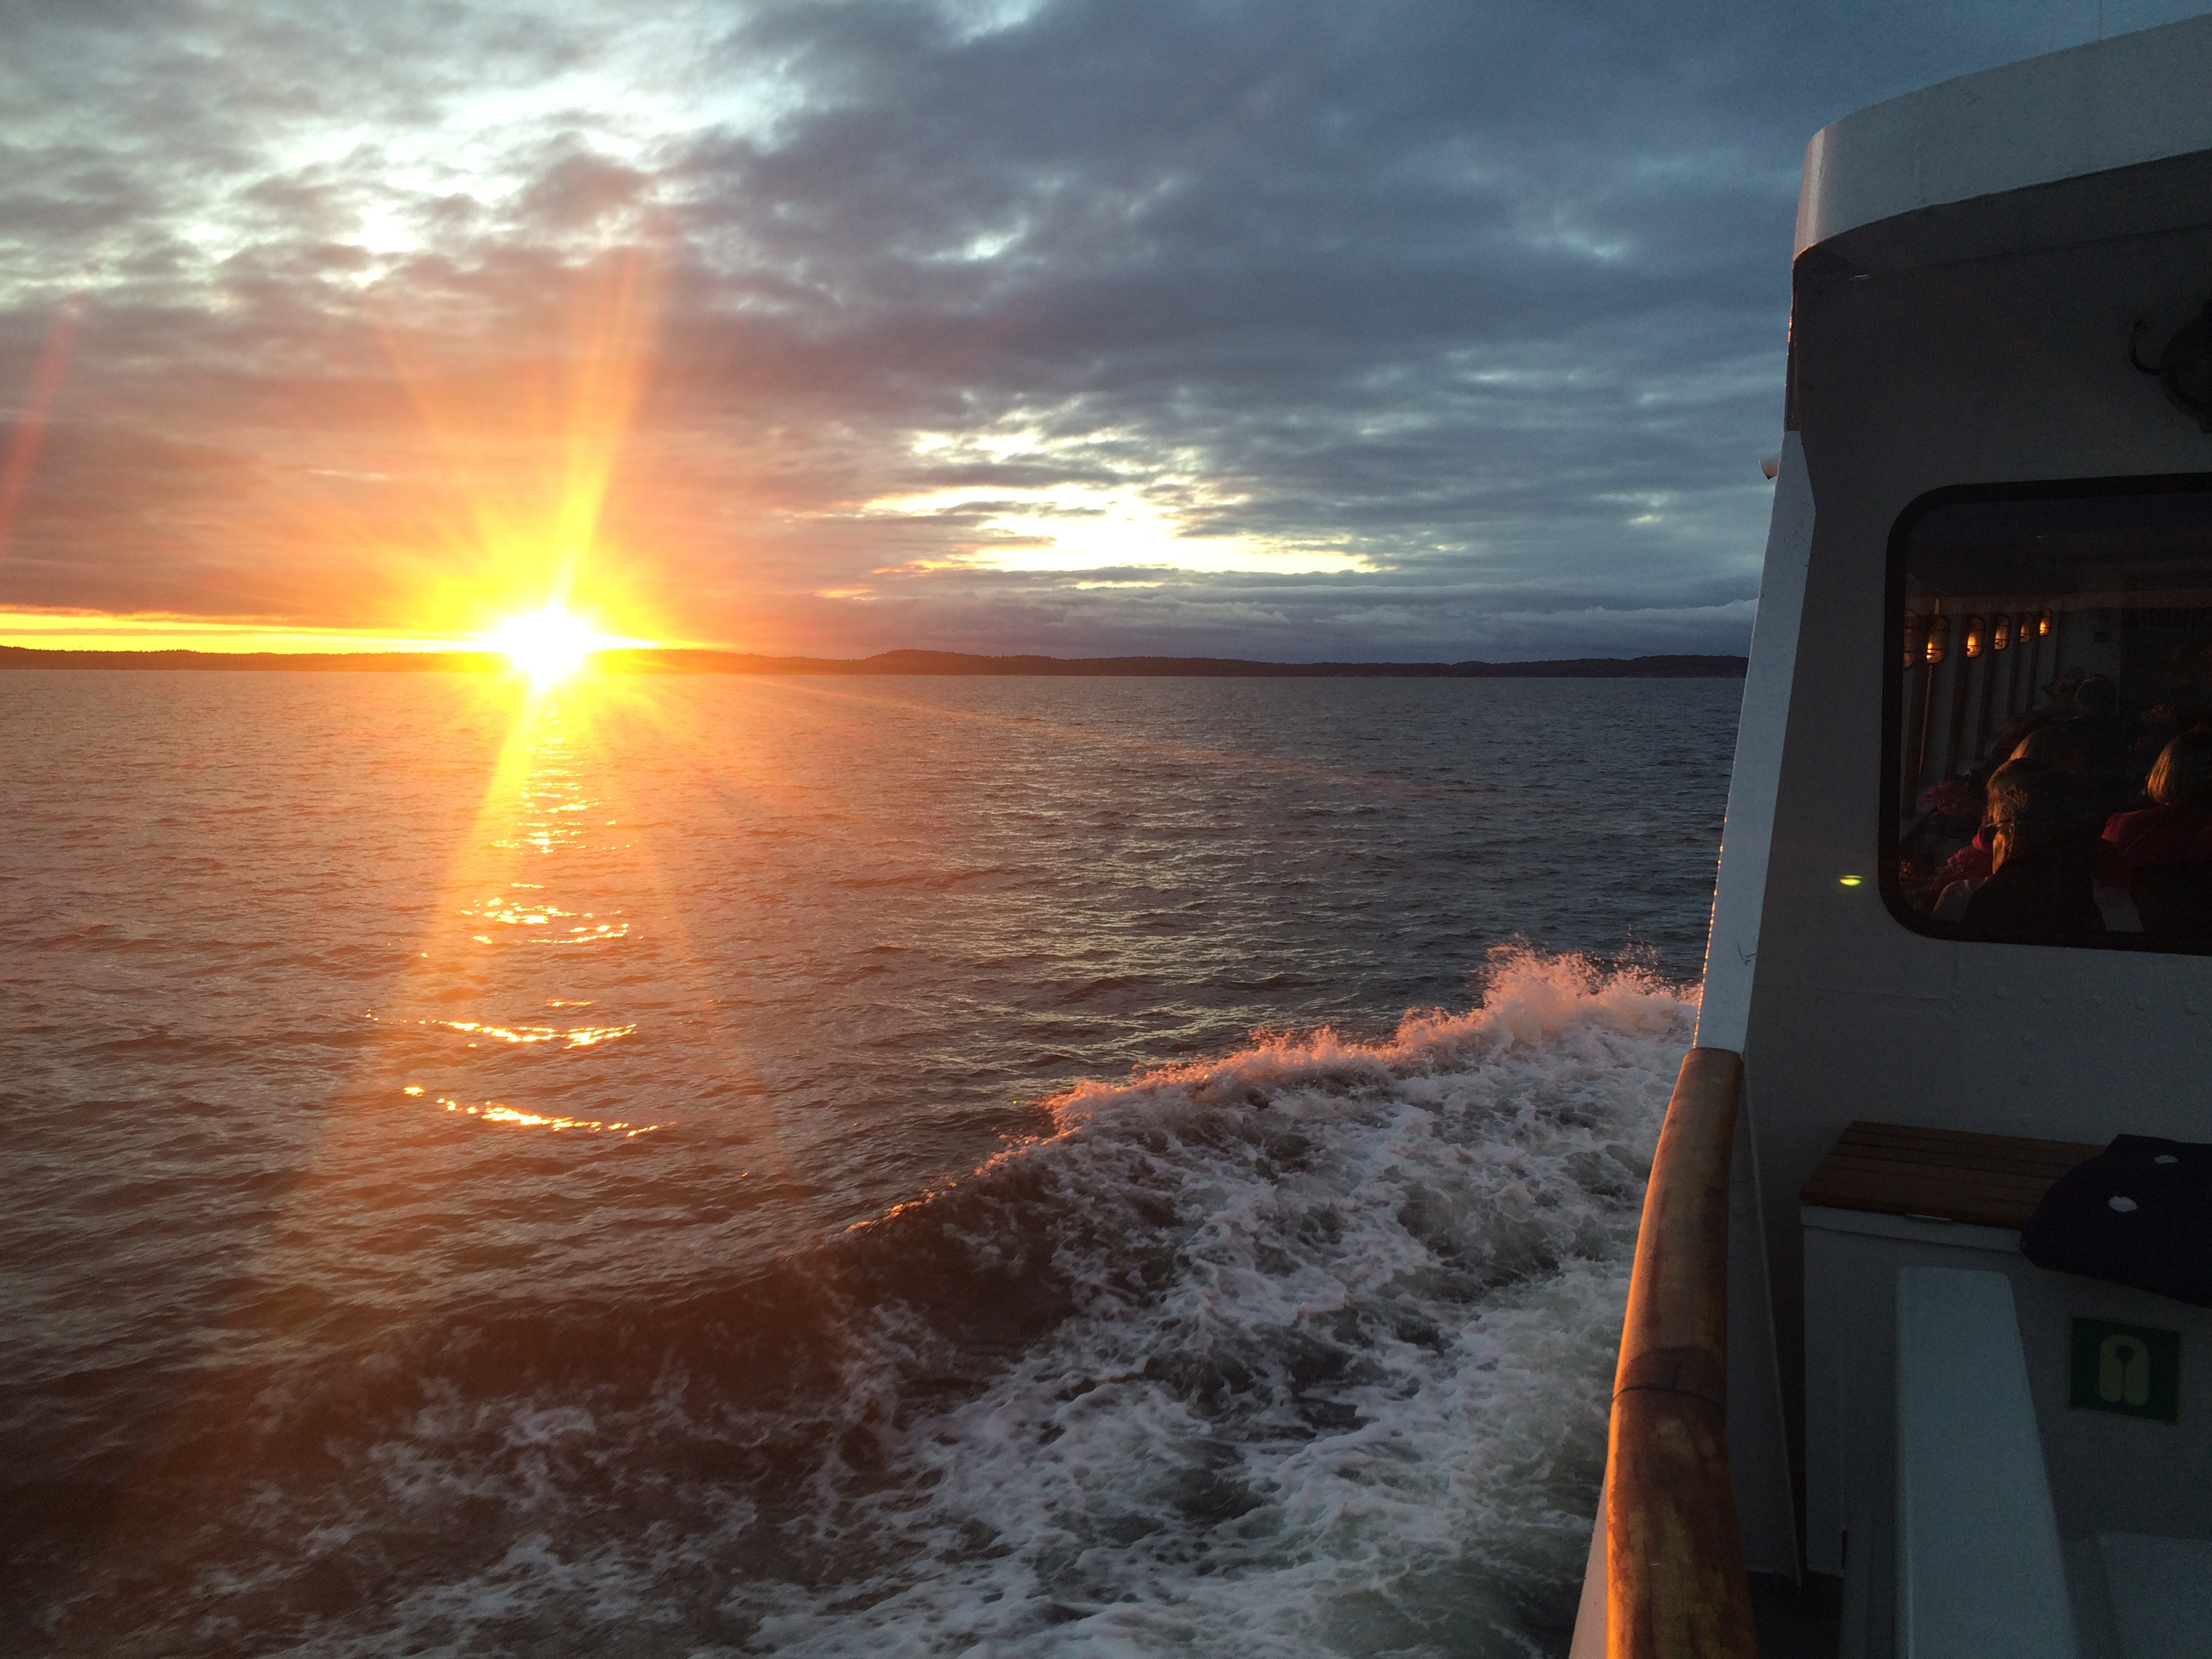 Travelling at sunset back through the archipelago